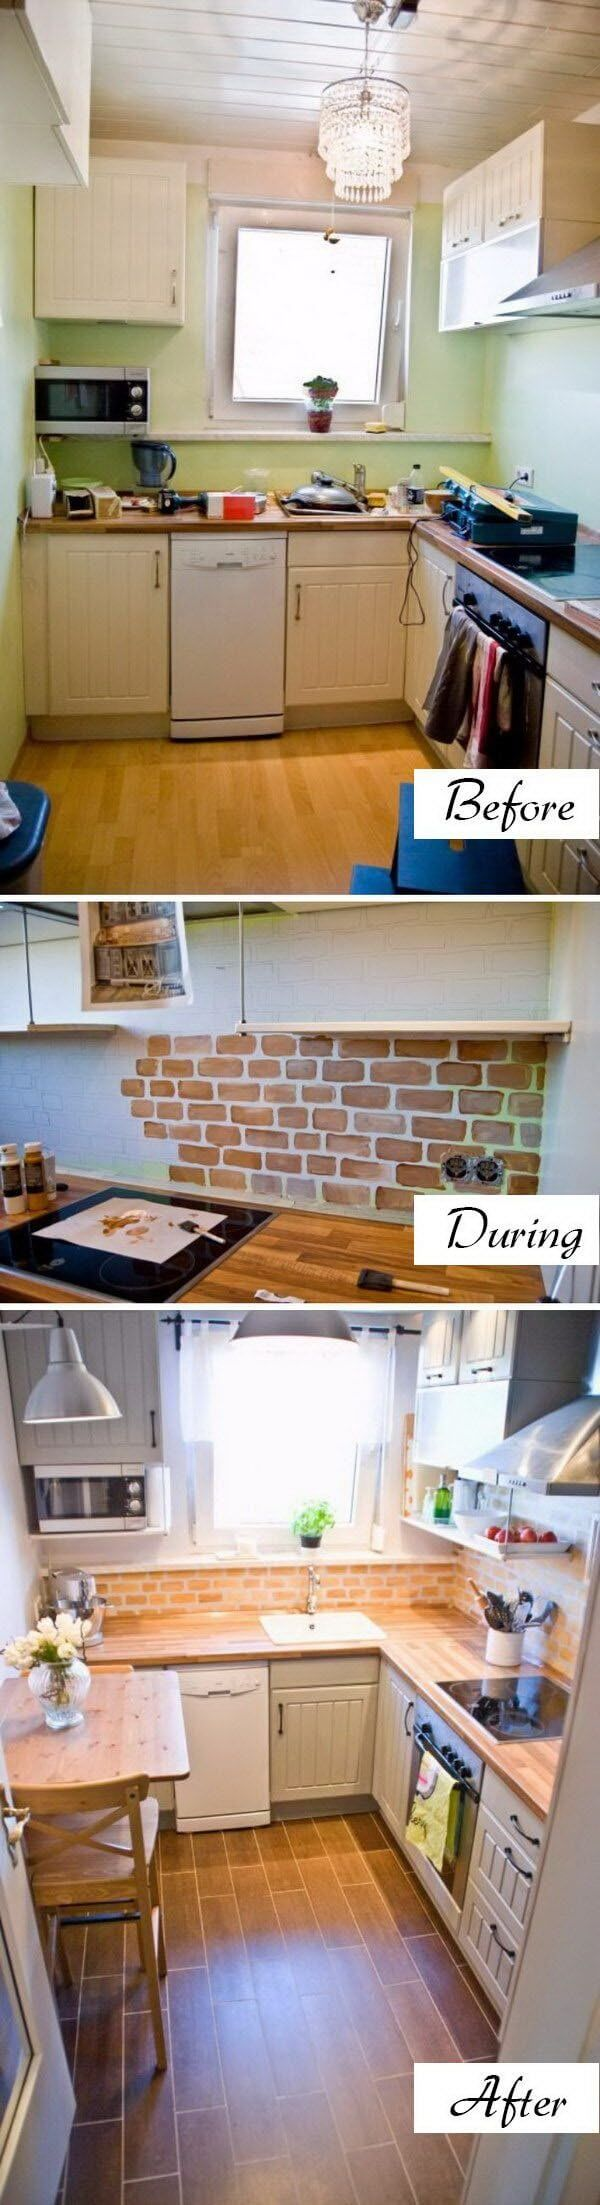 25+ Amazing Before and After: Budget Friendly Kitchen Makeover Ideas ...